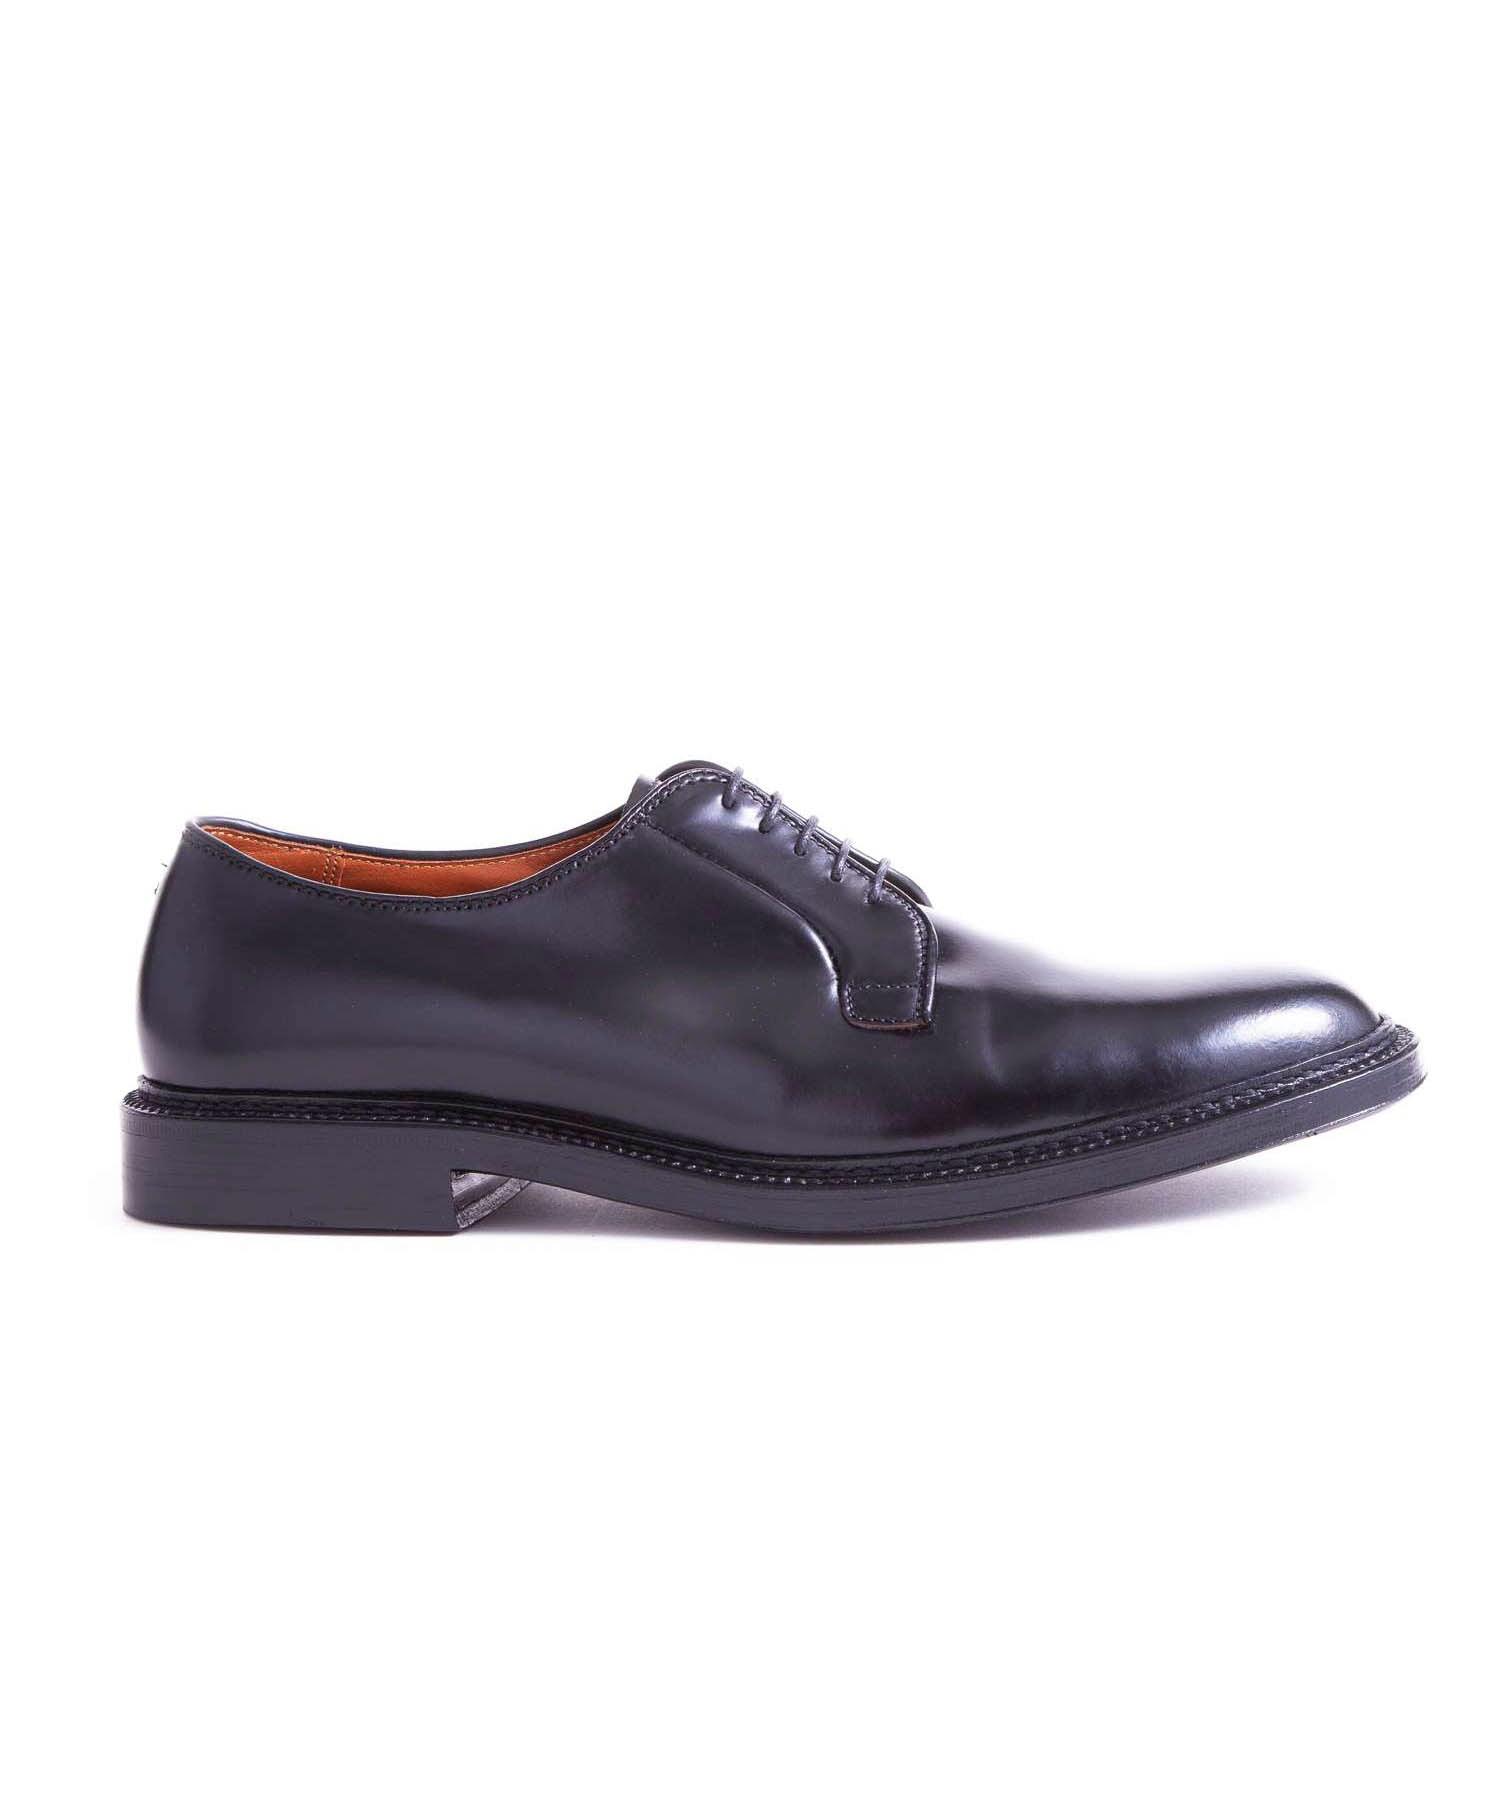 Alden Cordovan Plain Toe Blucher In Black